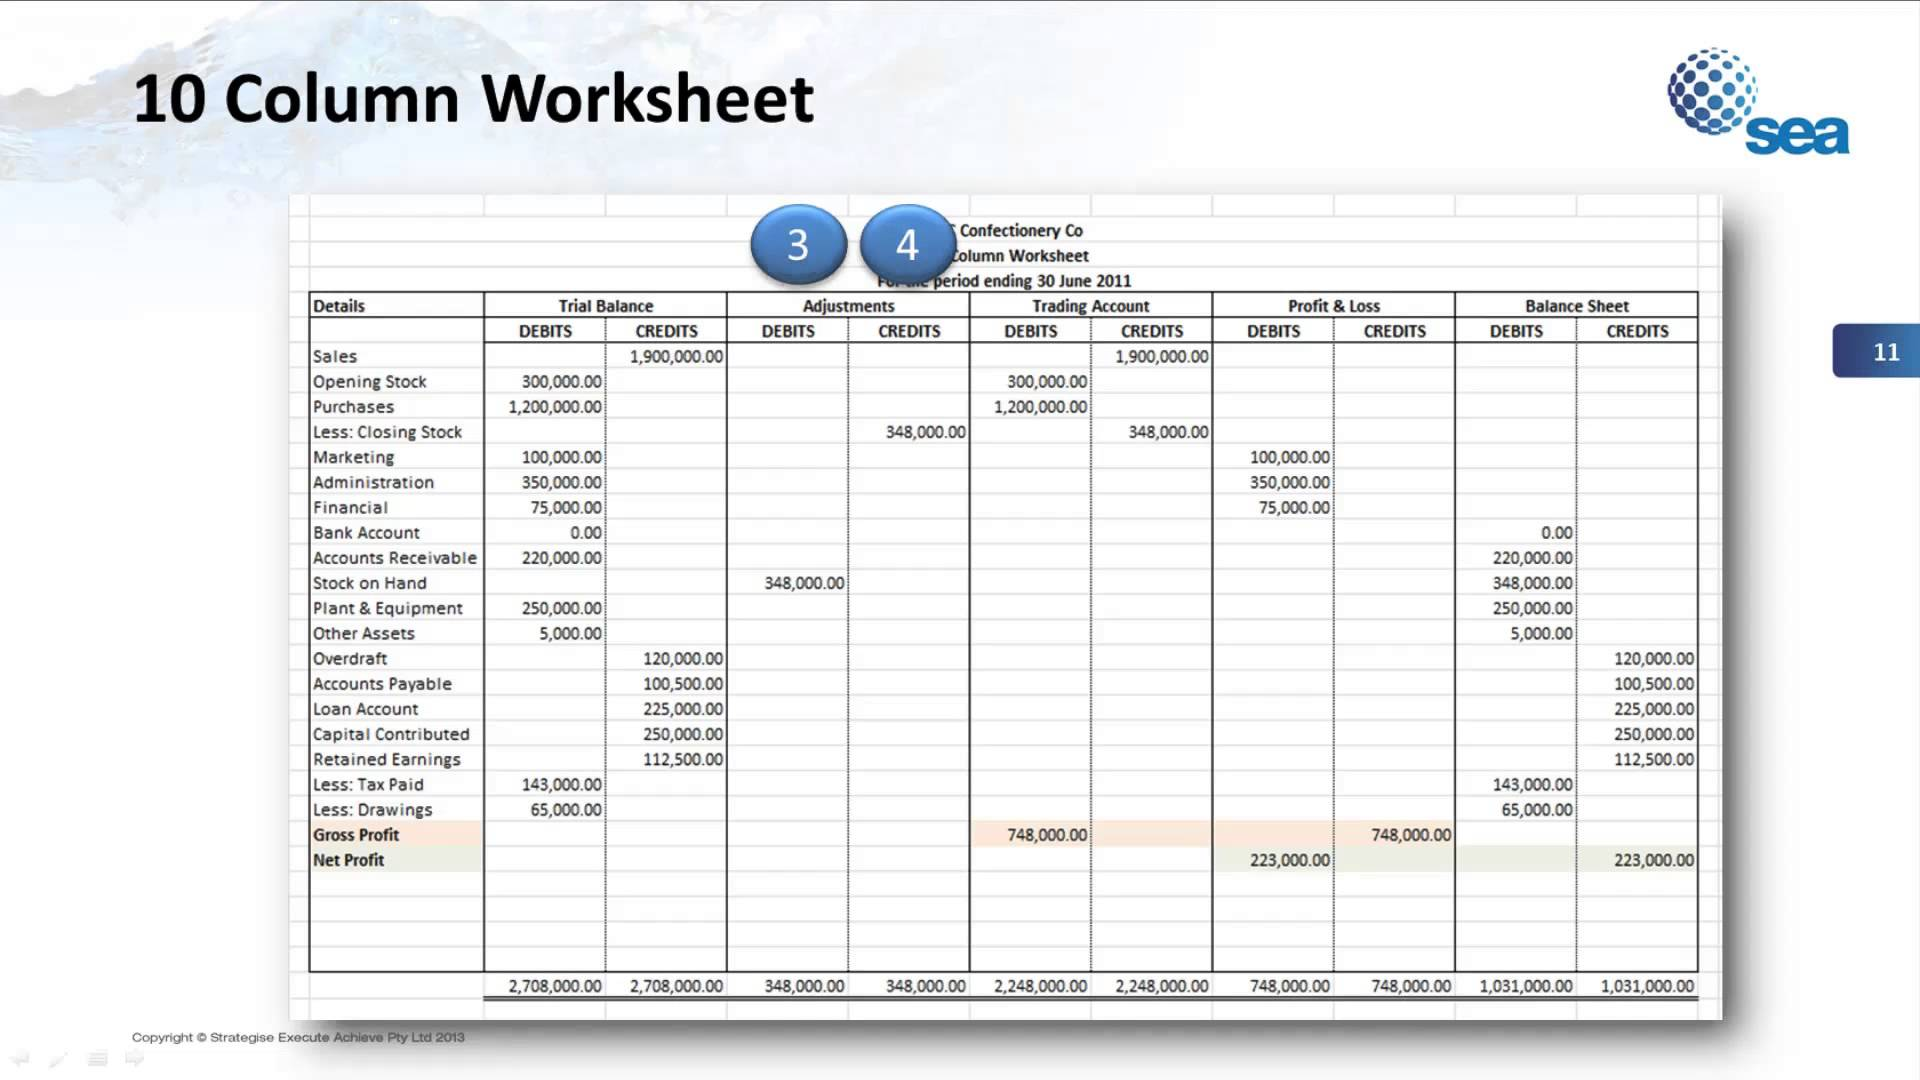 Worksheet Accounting 10 Column 74036